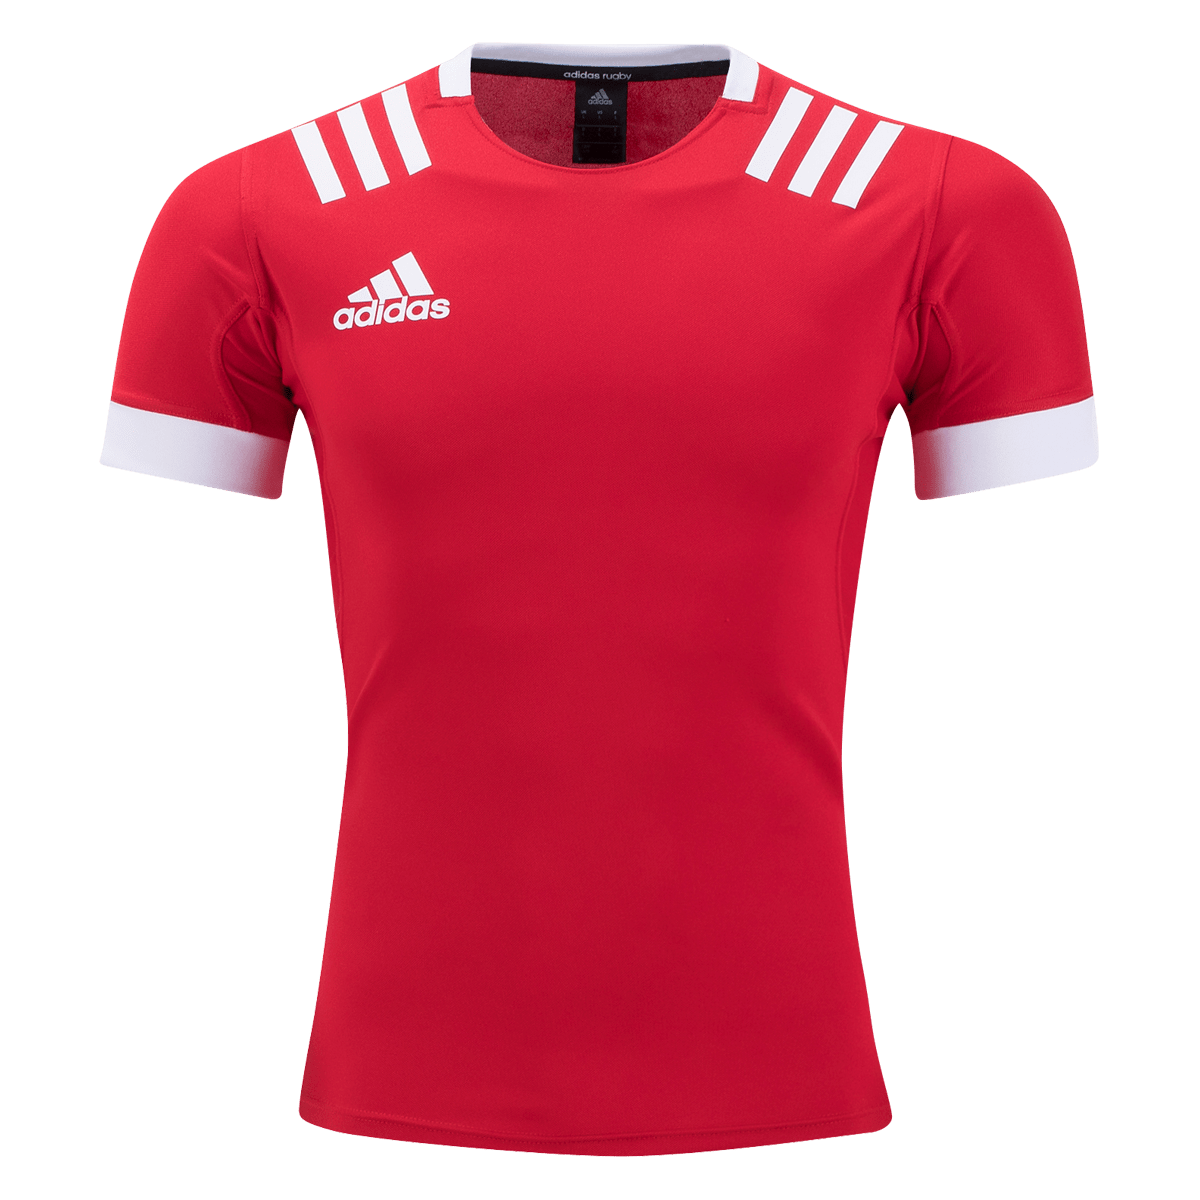 adidas Red/White 3 Stripe Rugby Jersey - World Rugby Shop